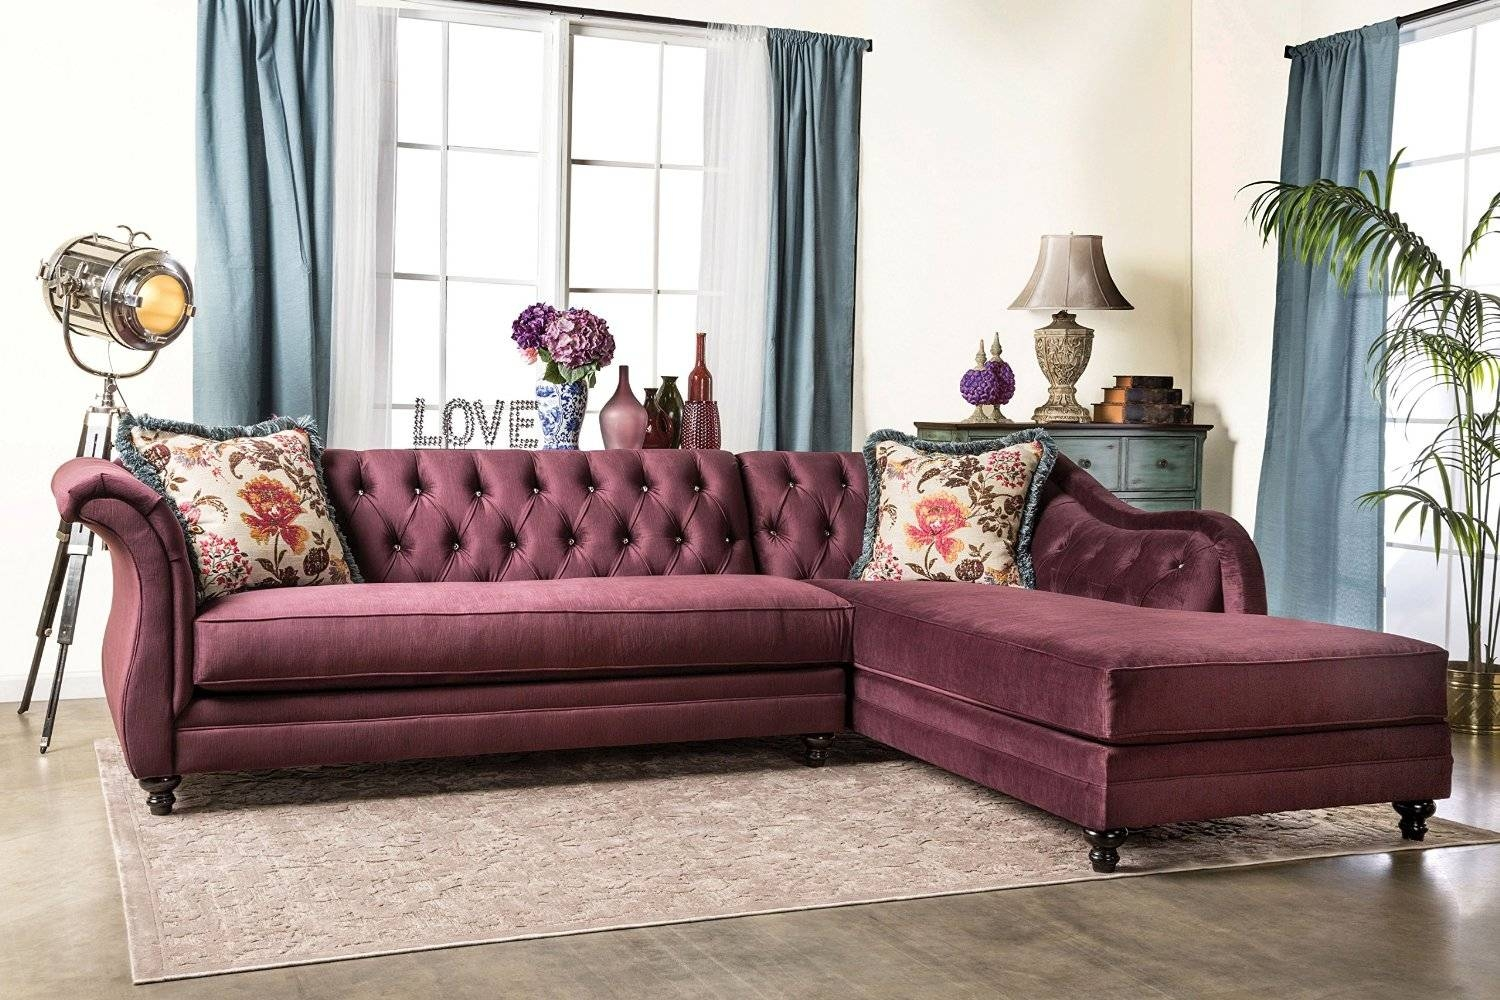 25 Best Chesterfield Sofas To Buy In 2017 within Tufted Leather Chesterfield Sofas (Image 4 of 30)